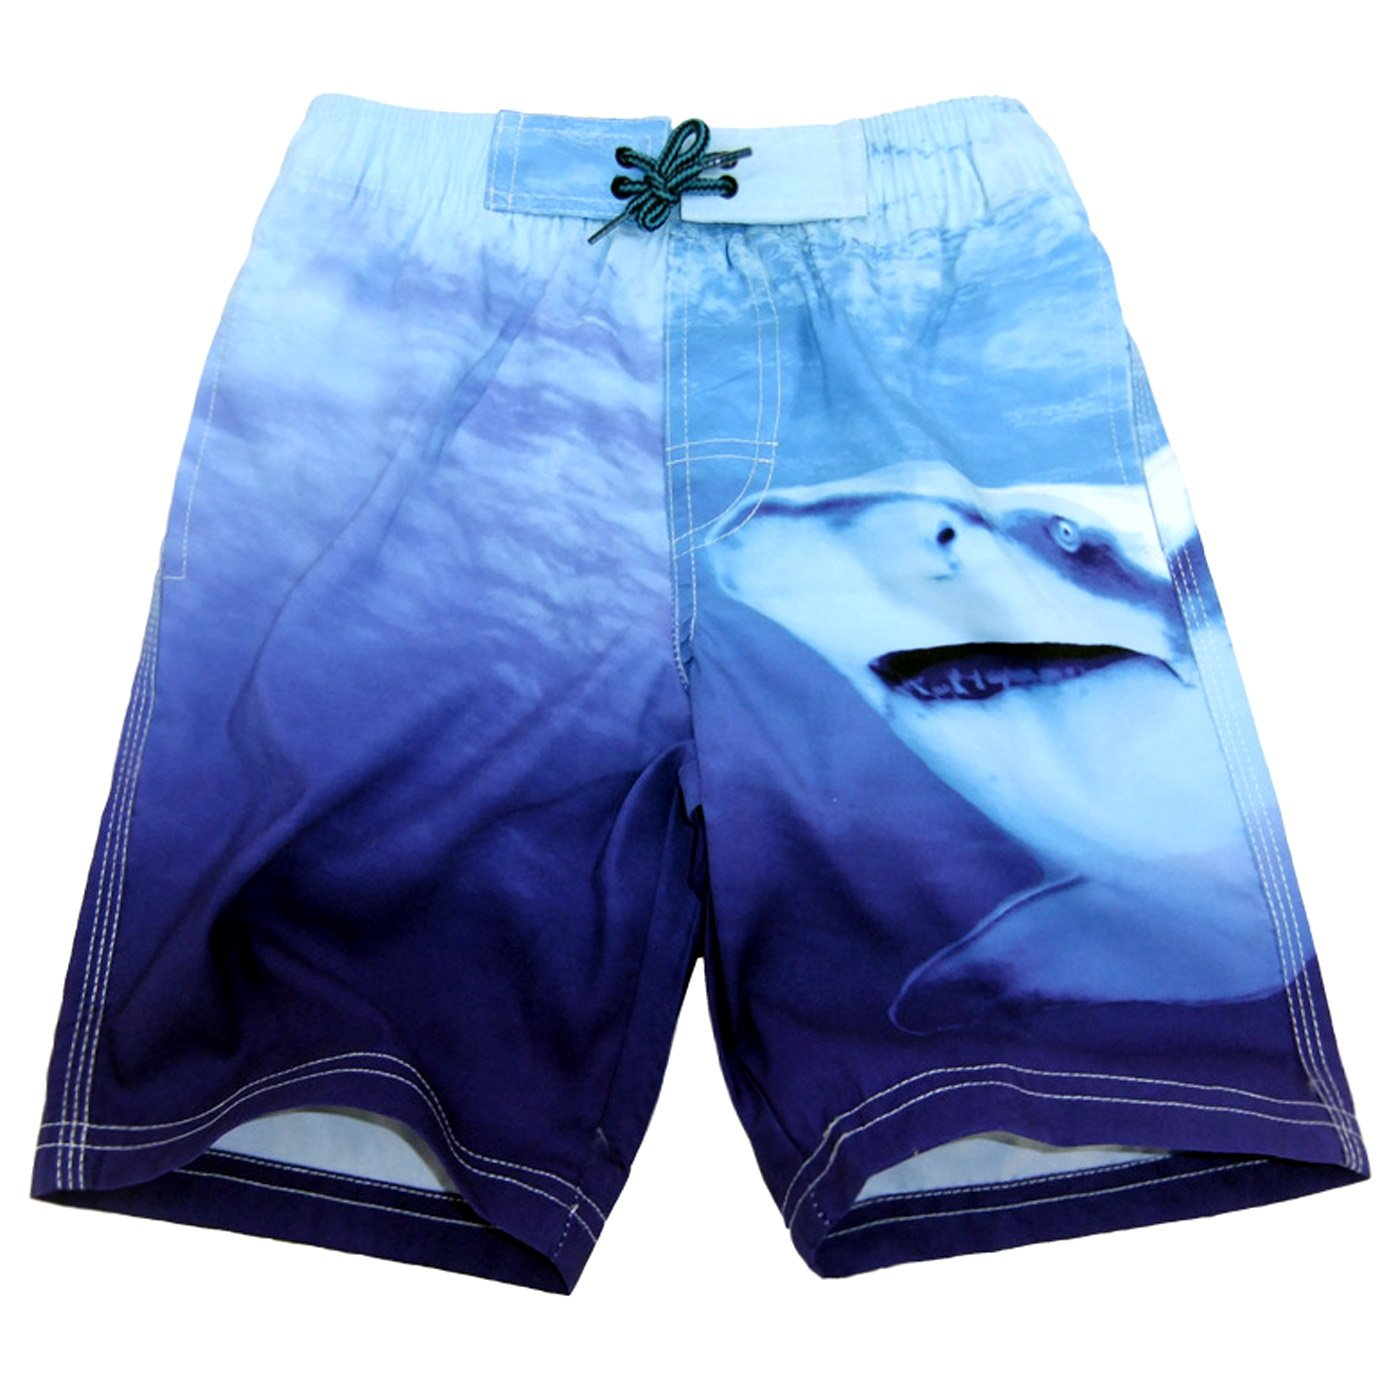 Boys Swim Trunk Drawstring Shark Varied Blue Quick Dry Swimming Beach Shorts SLGADEN